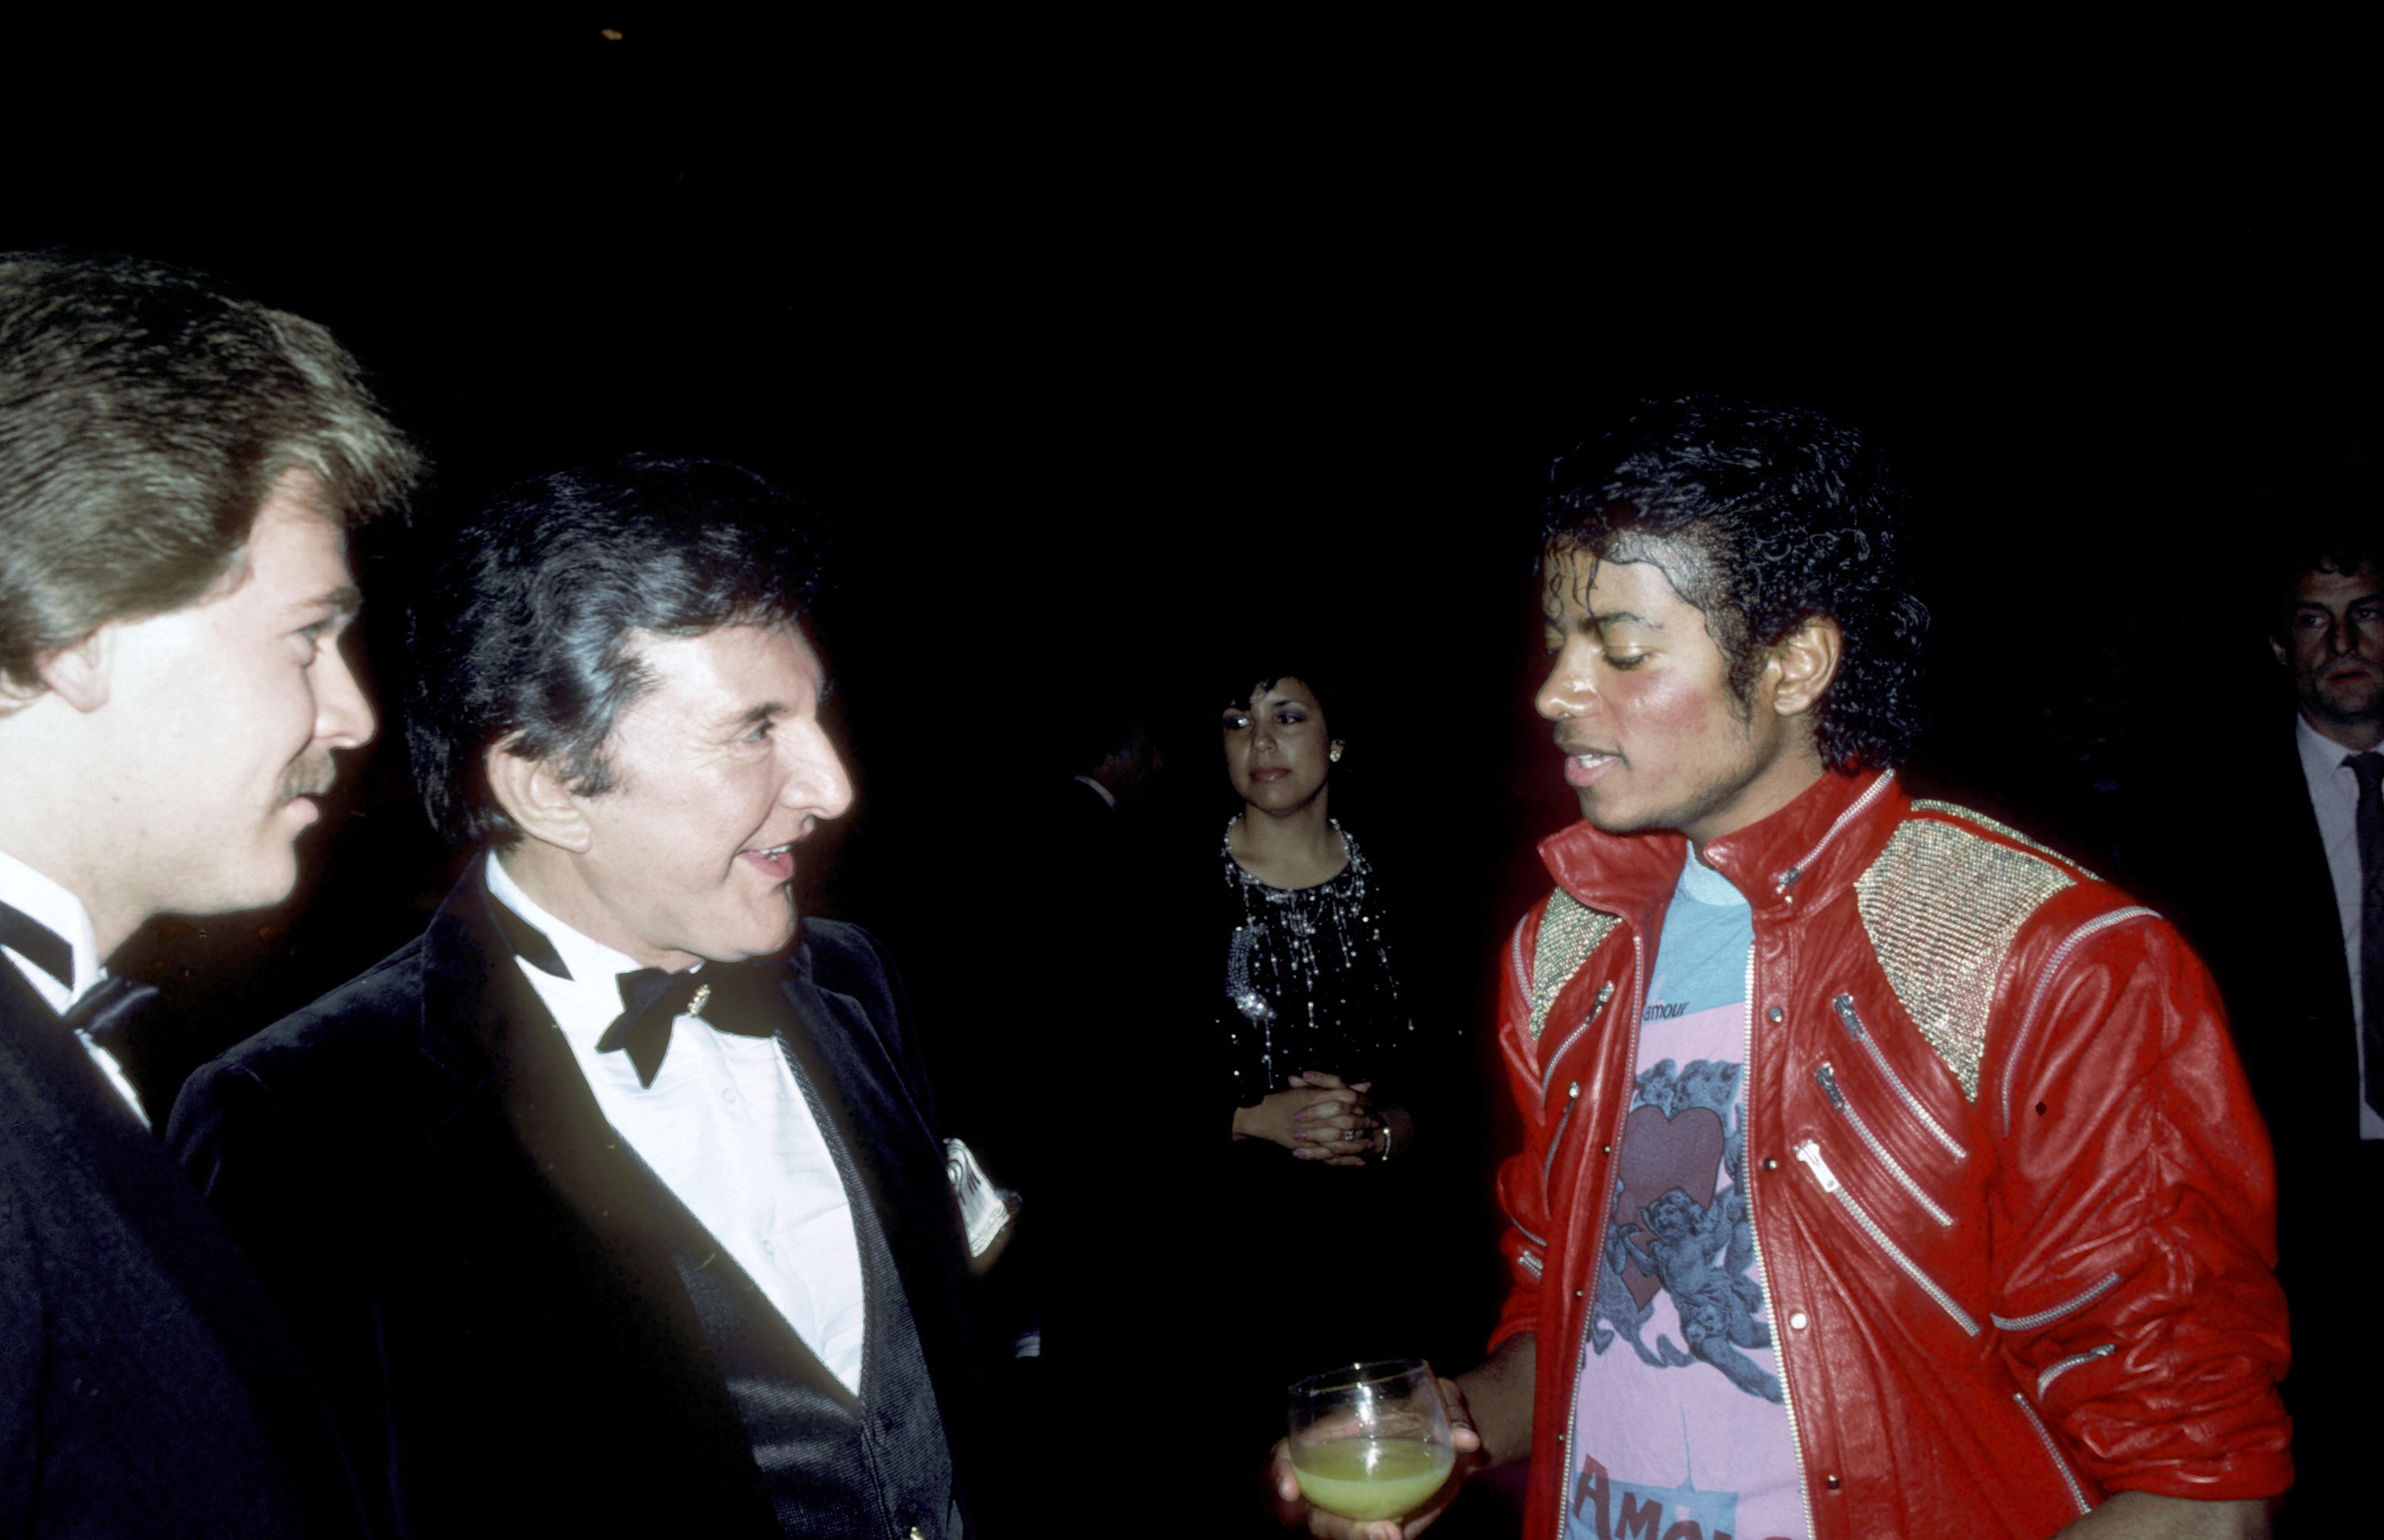 3000x1938 Michael Jackson images Michael Jackson Thriller Era HD wallpaper and  background photos